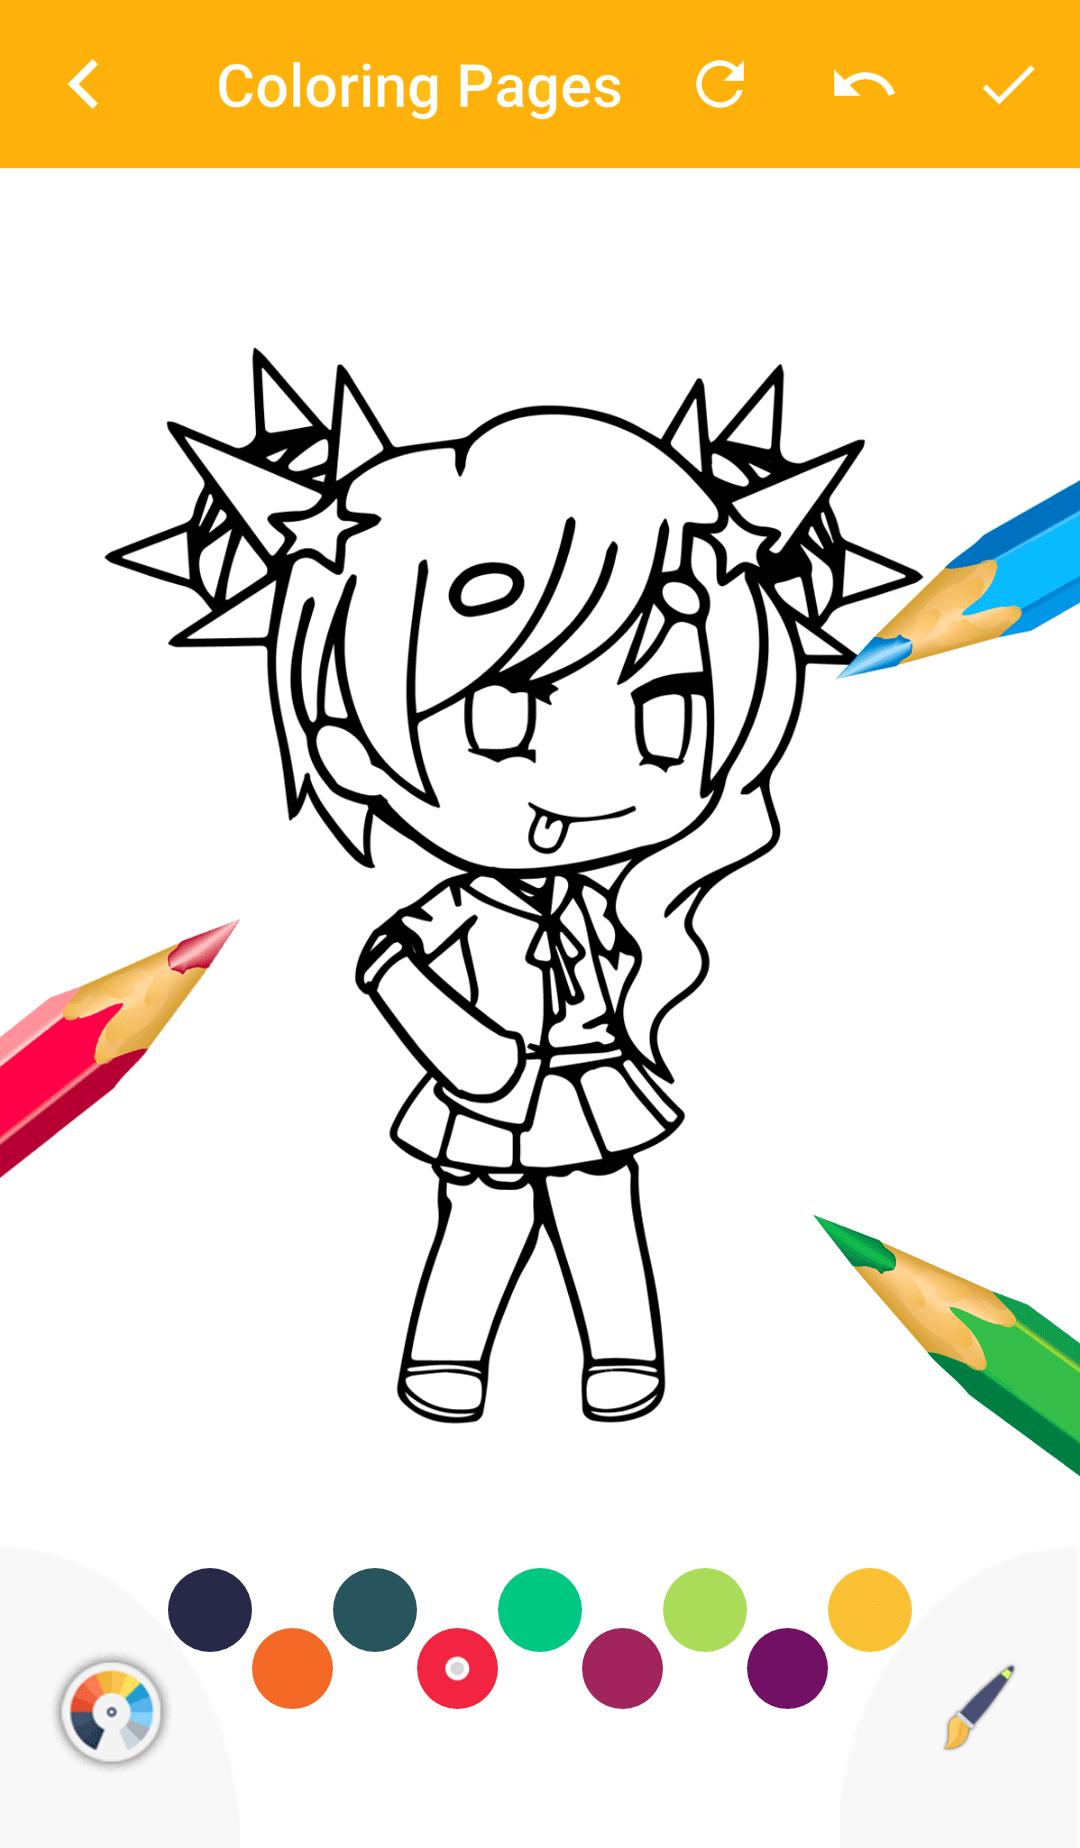 Gacha Coloring Book Game for Android - APK Download